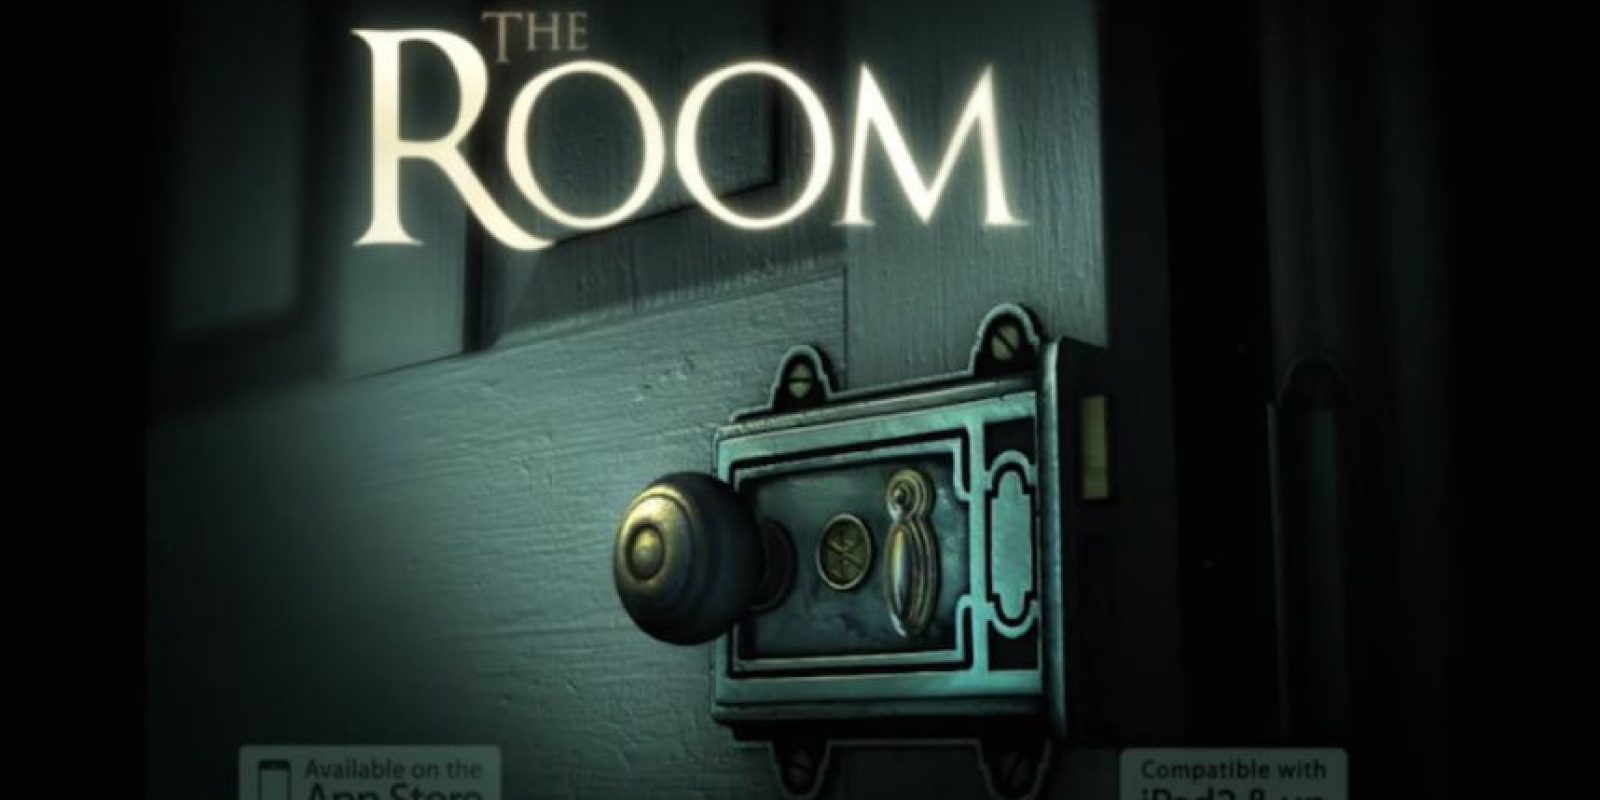 2.- The Room Foto: The Room